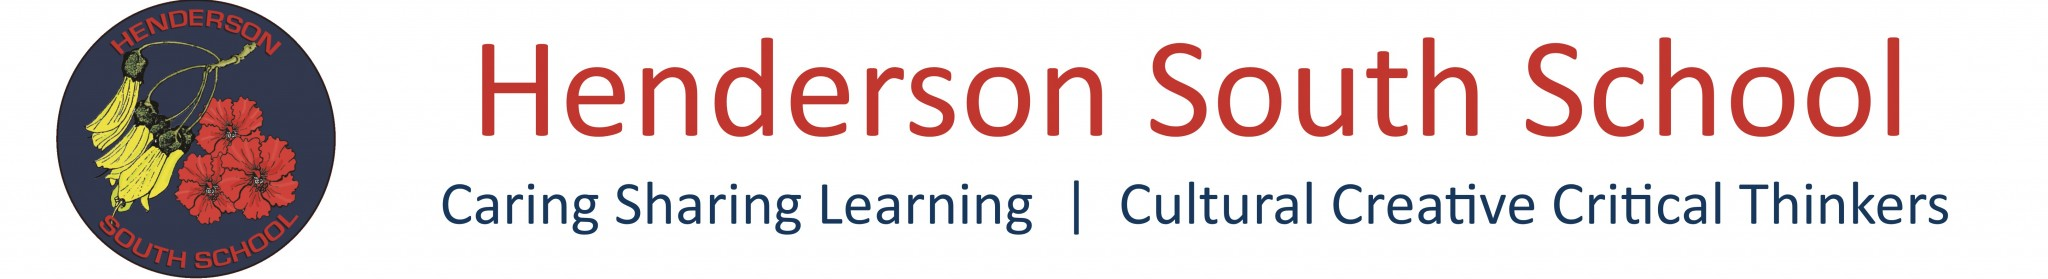 Henderson South School Logo